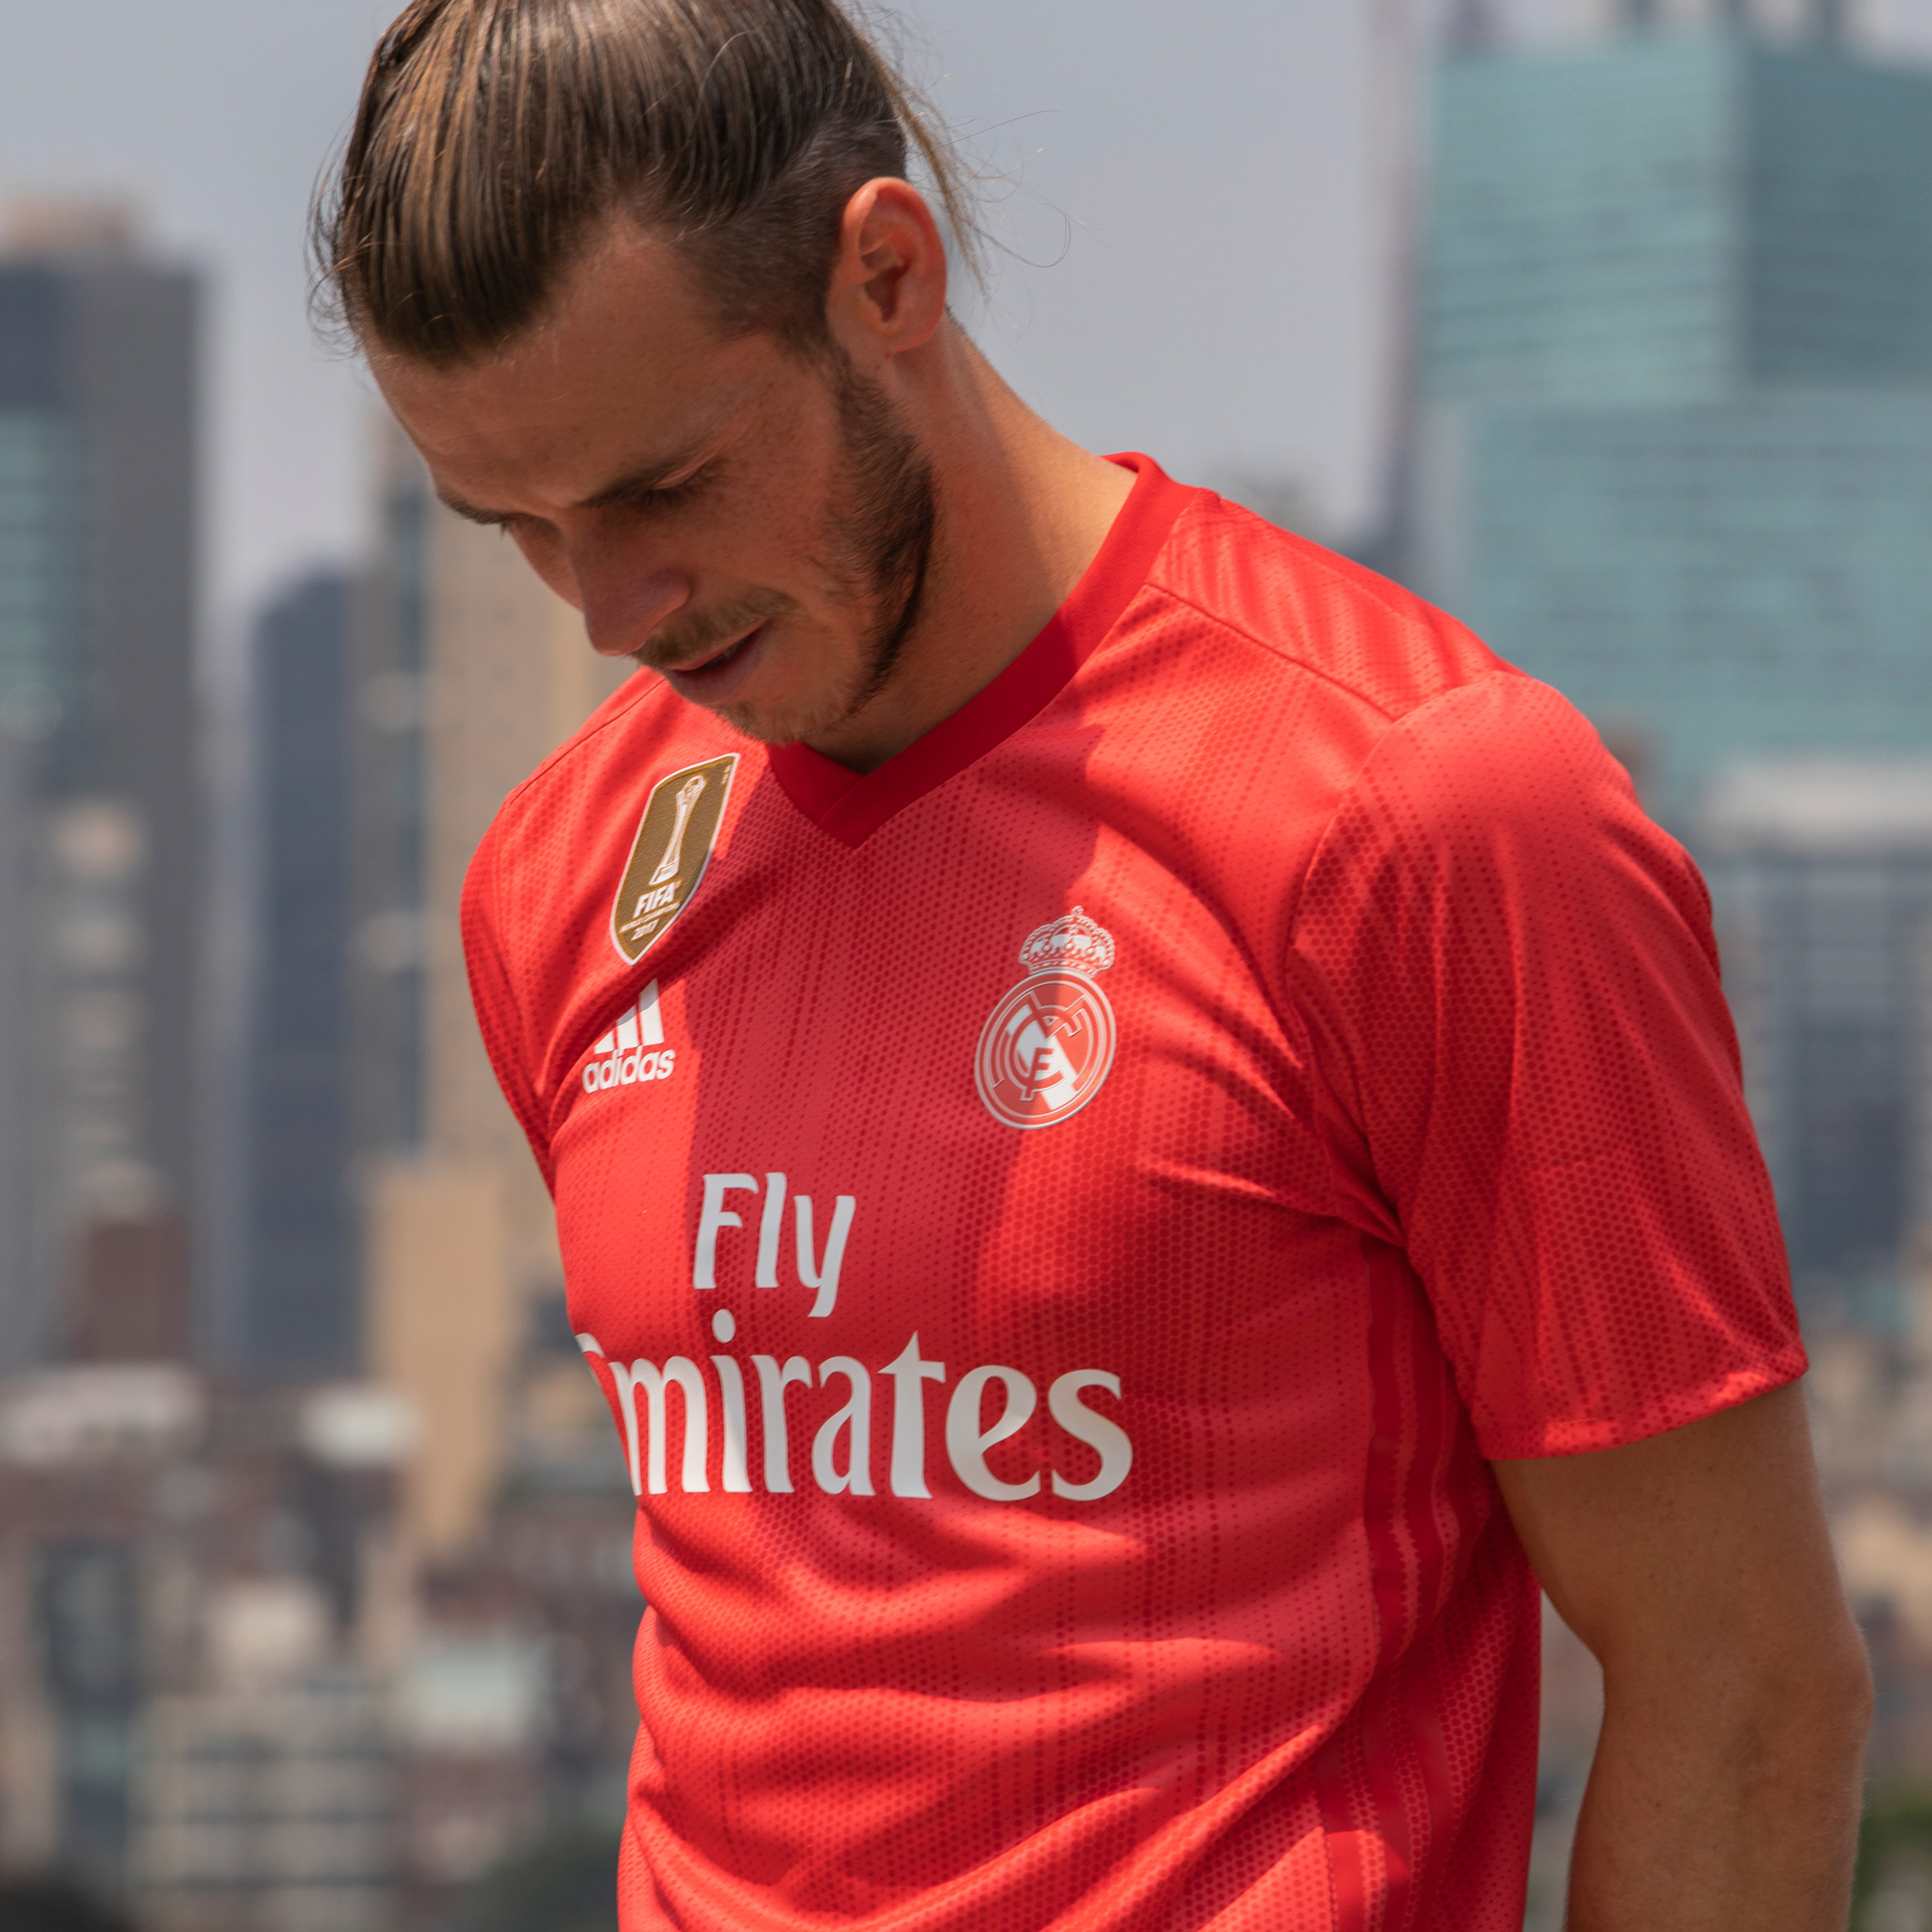 Real Madrid's kits made from ocean plastic by Adidas